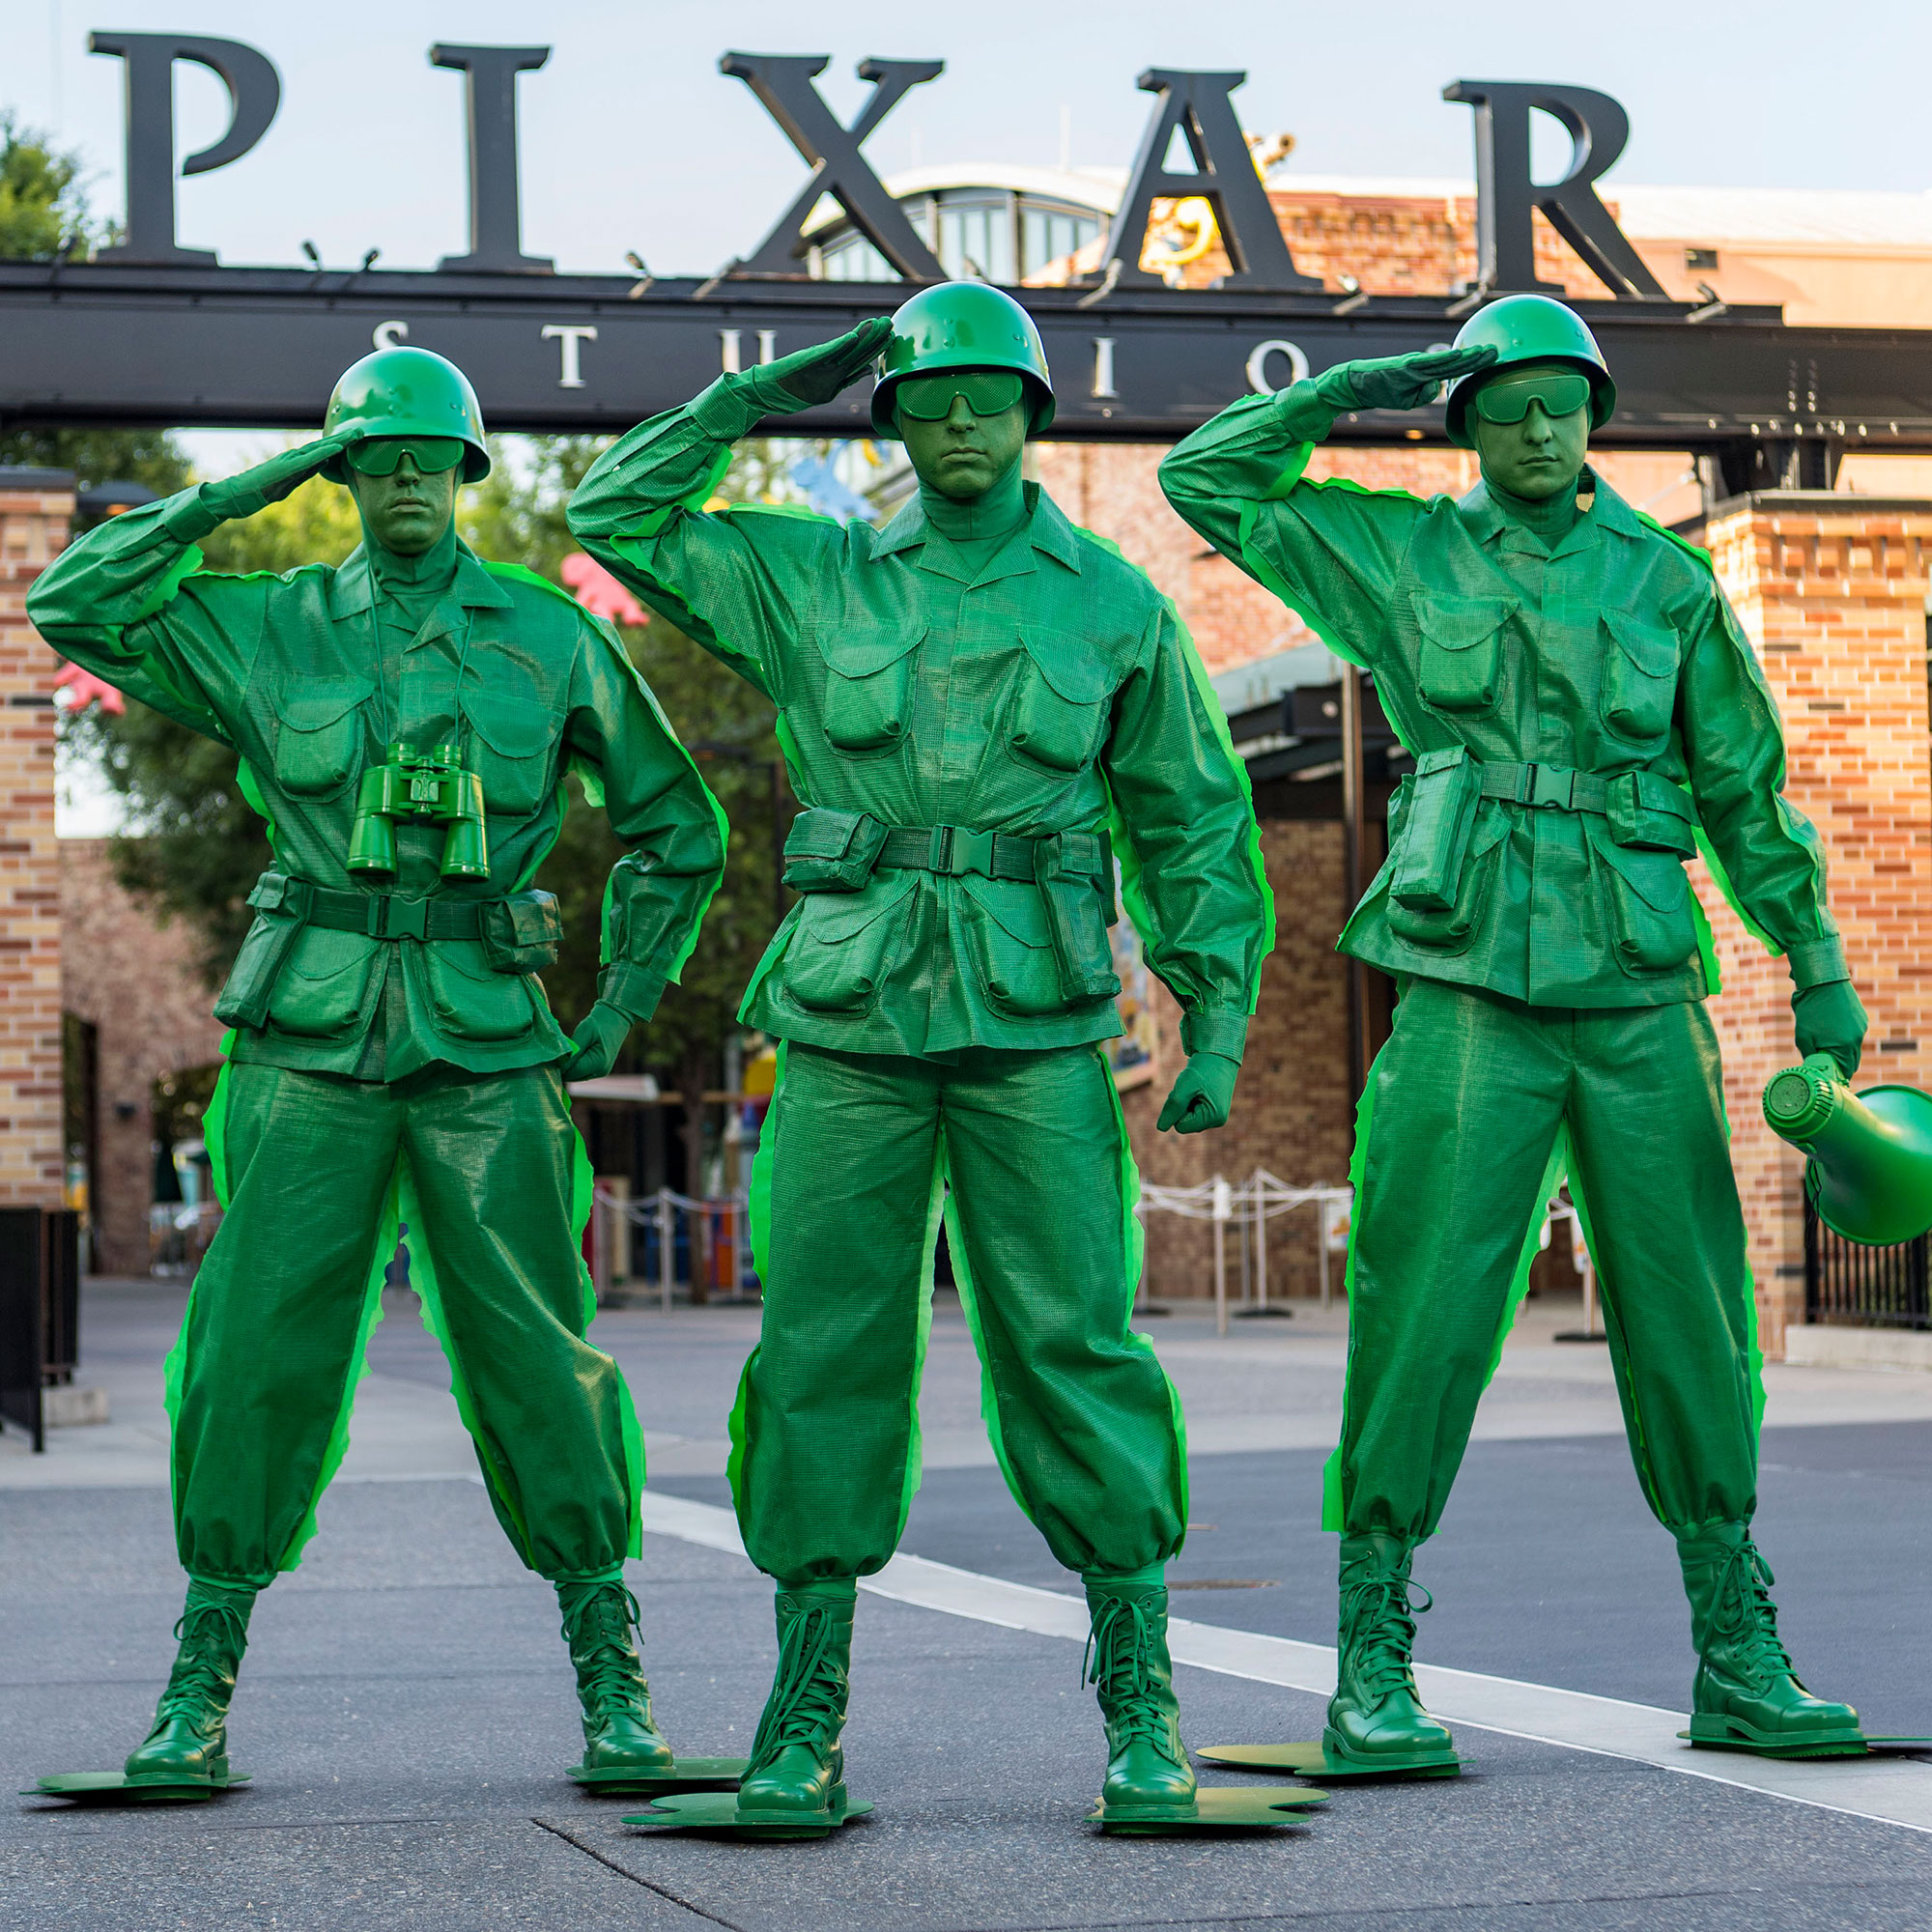 toy-story-land-green-army-men